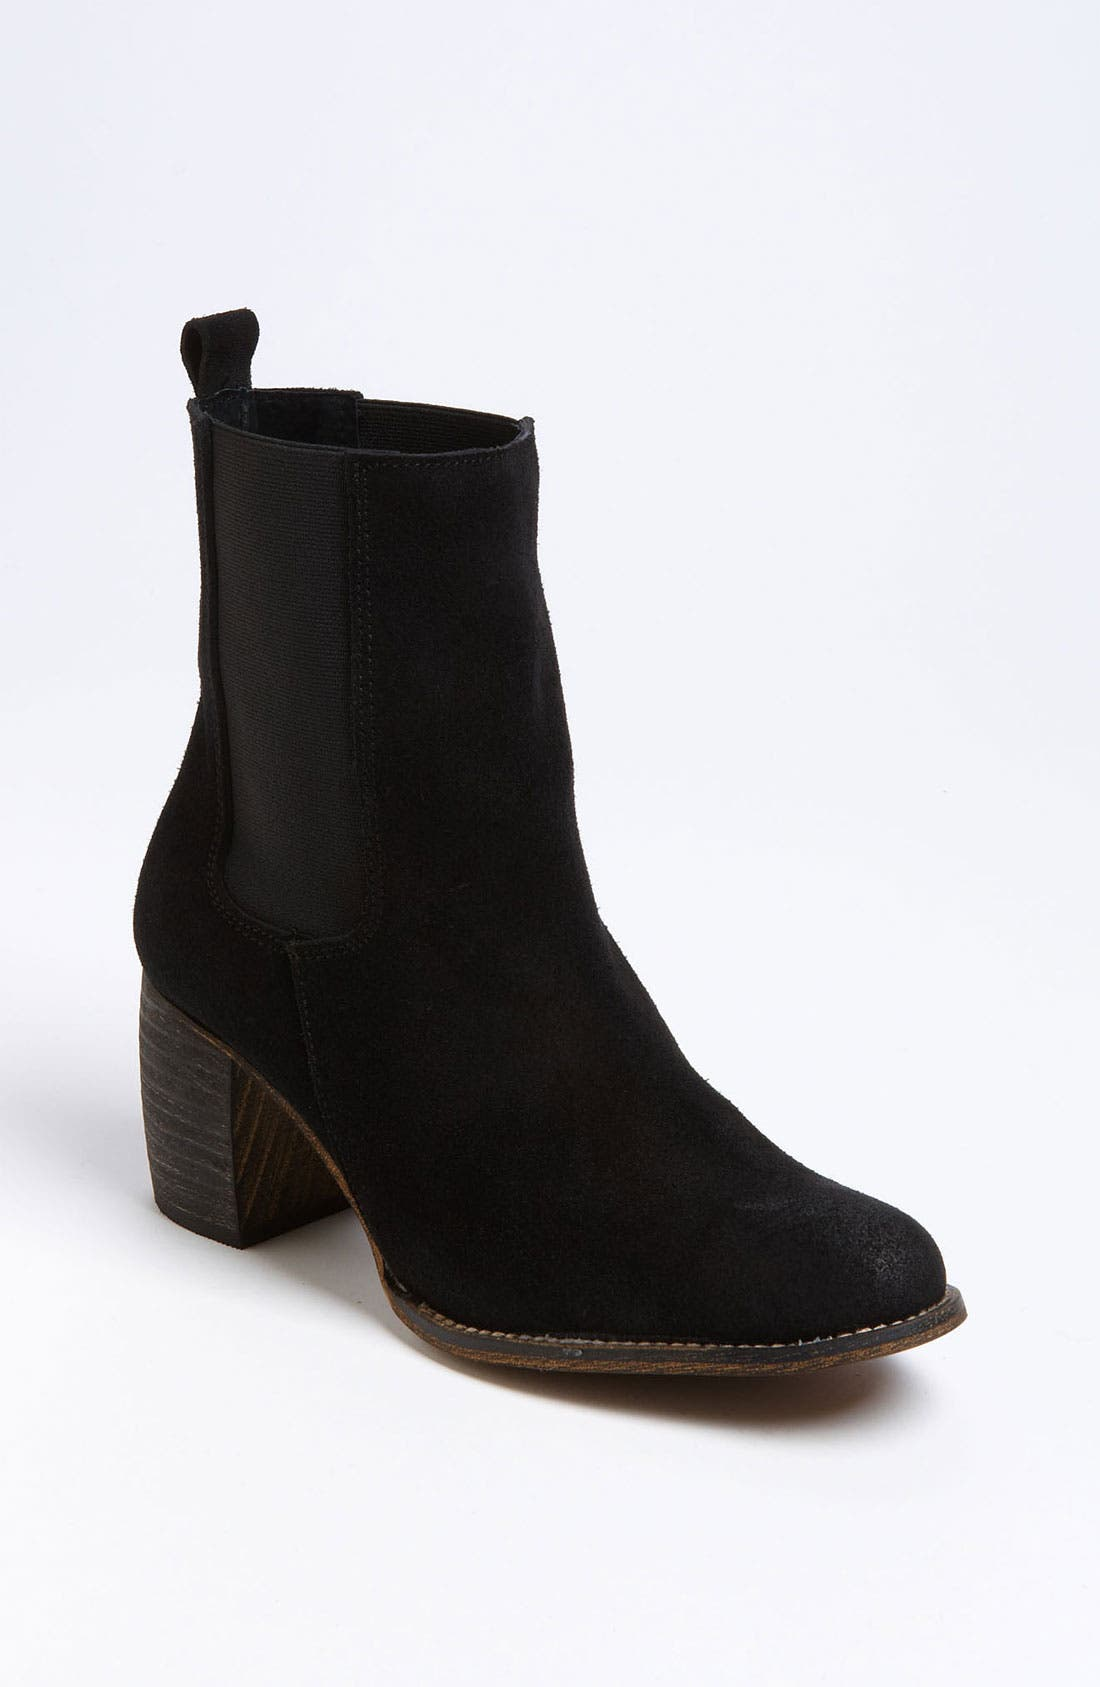 Main Image - Jeffrey Campbell 'Areas' Boot